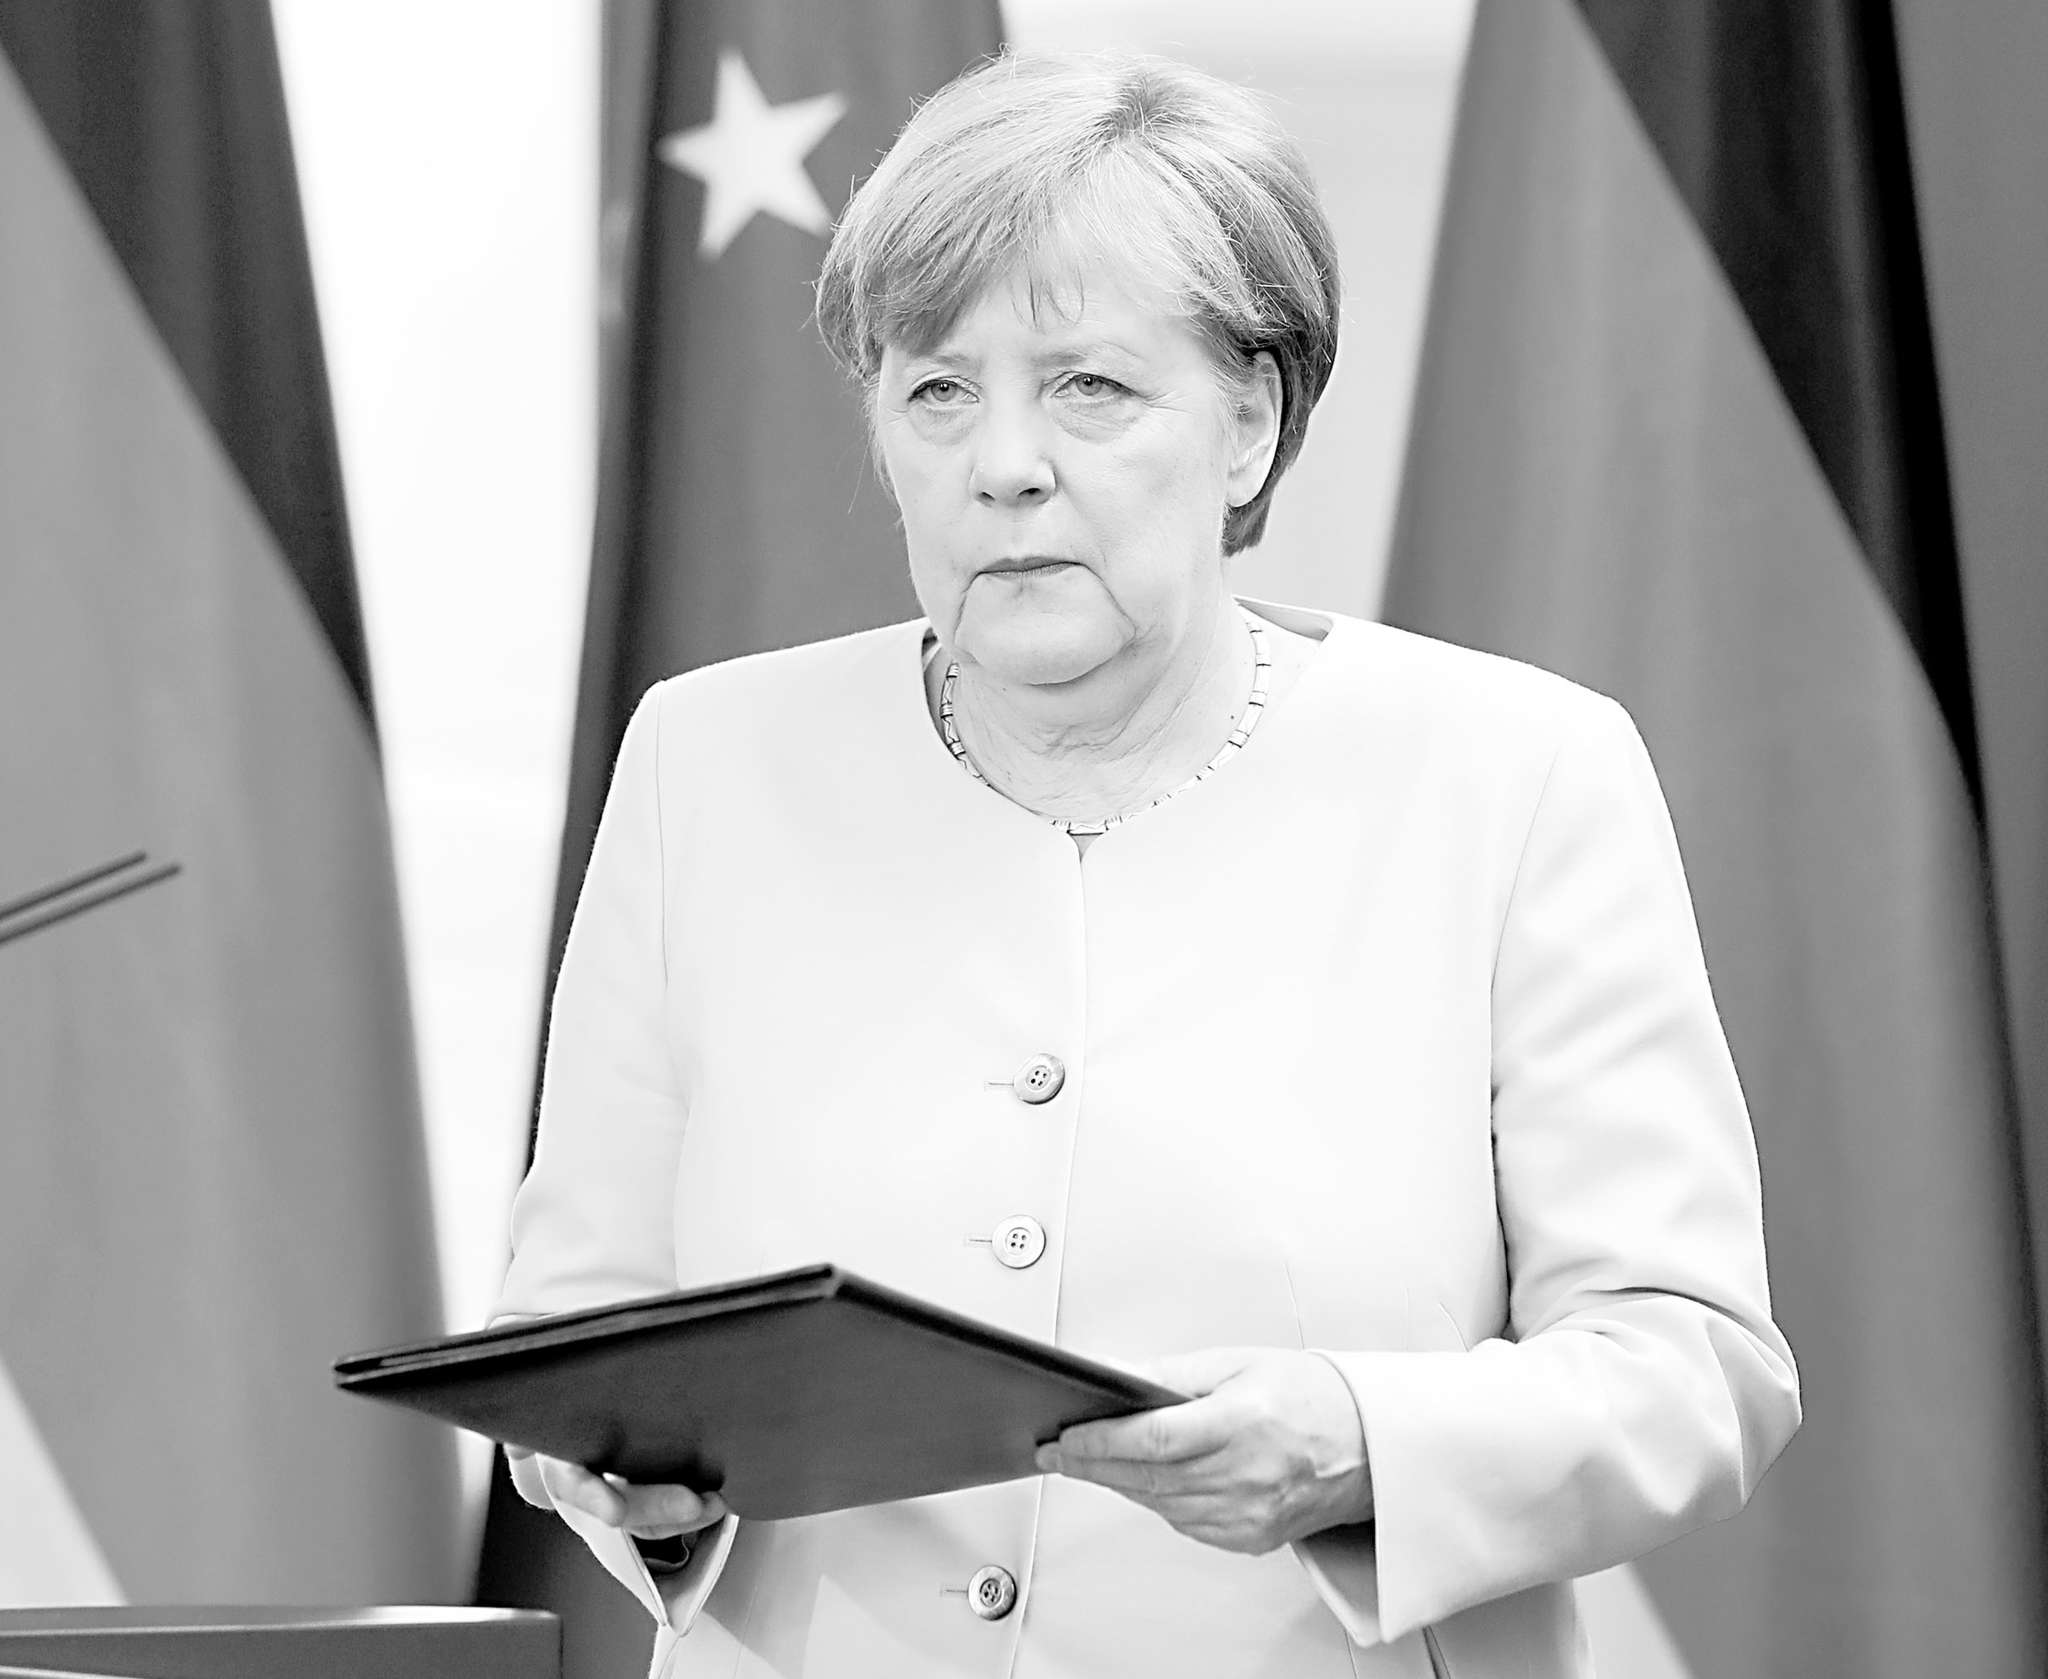 German Chancellor Angela Merkel said Brexit opponents need to stay composed.